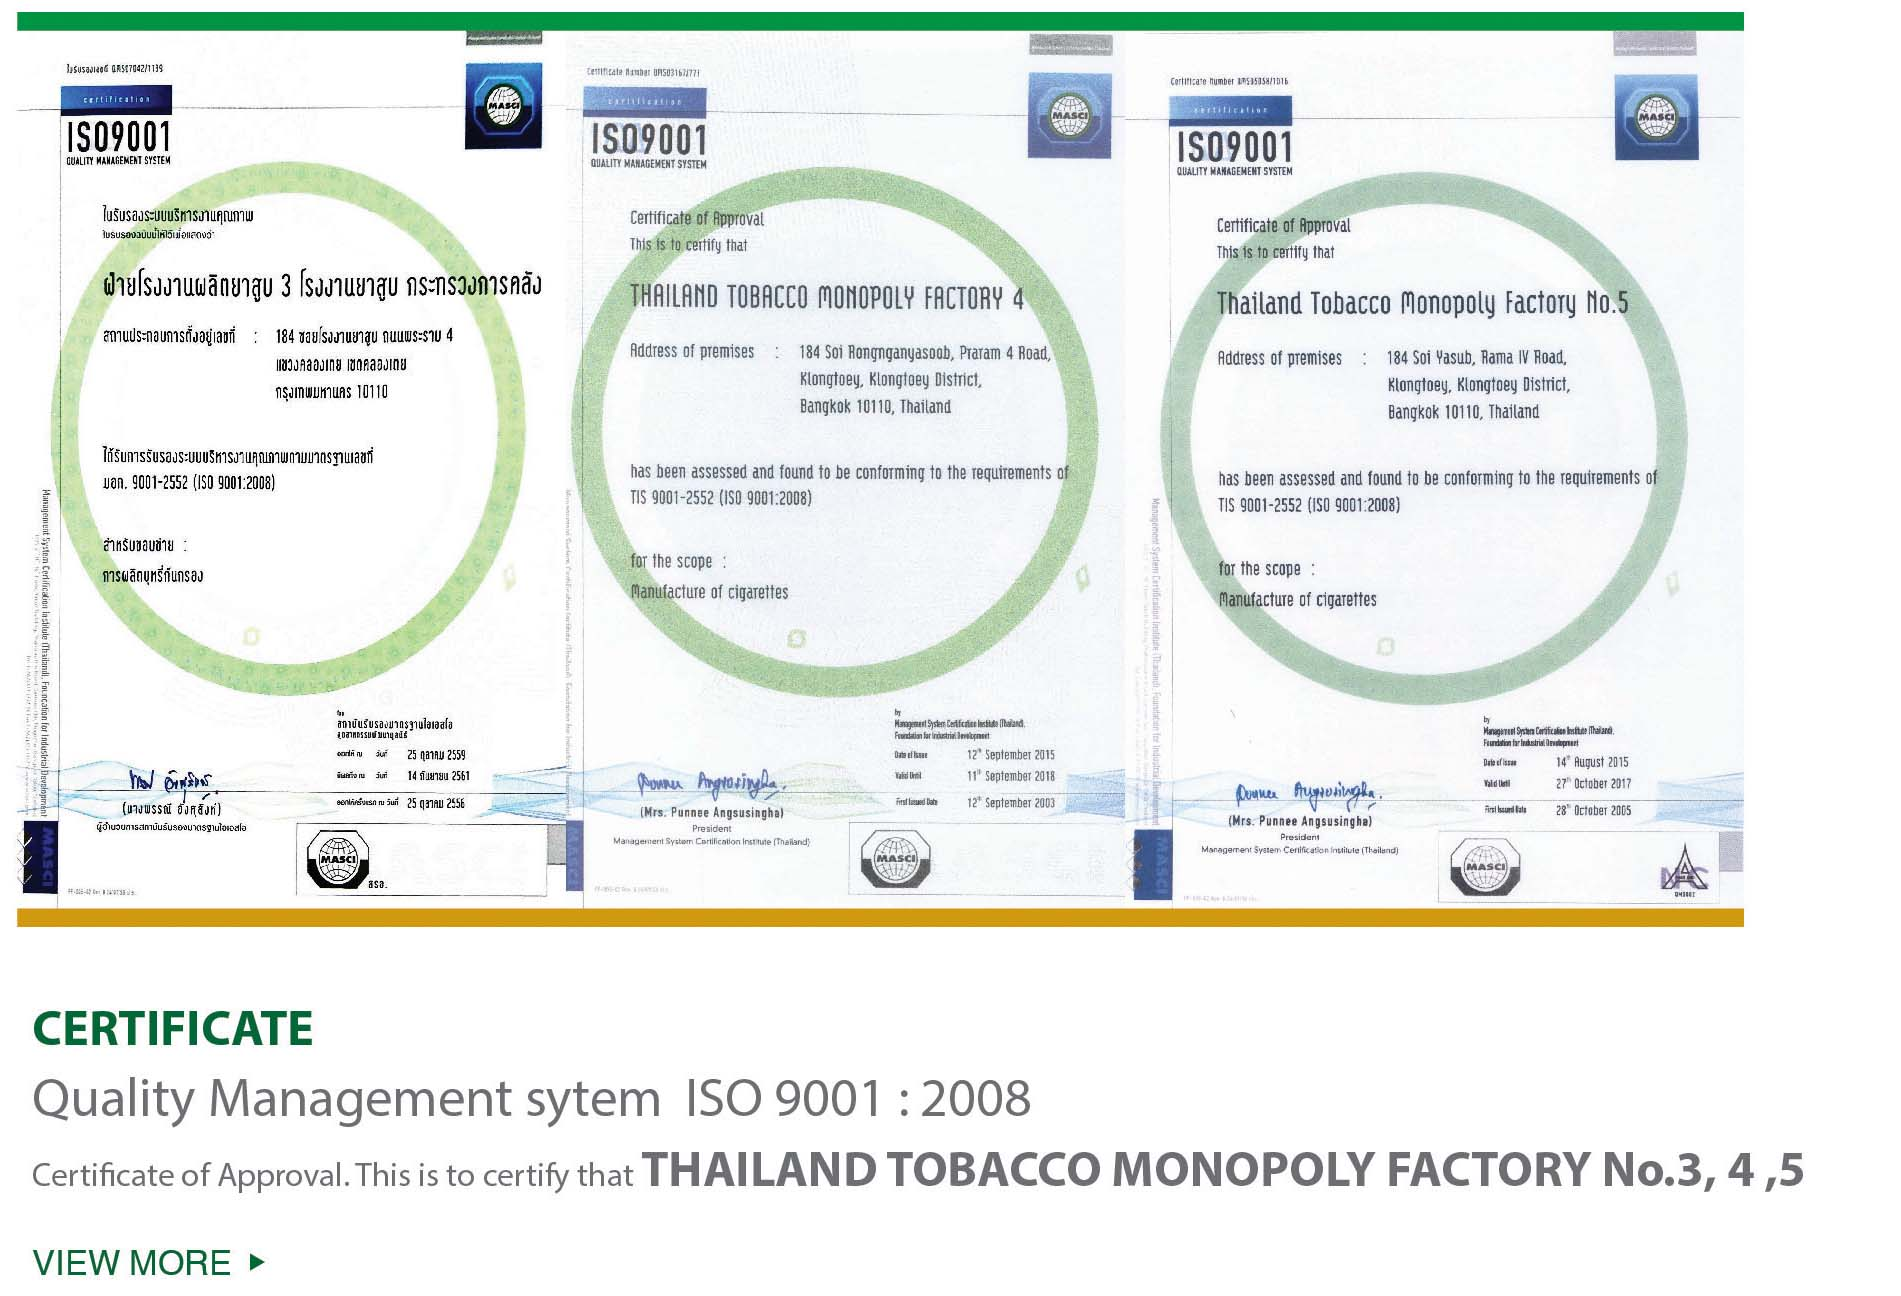 Safety Occupational Health and Environment Management : CIGARETTES